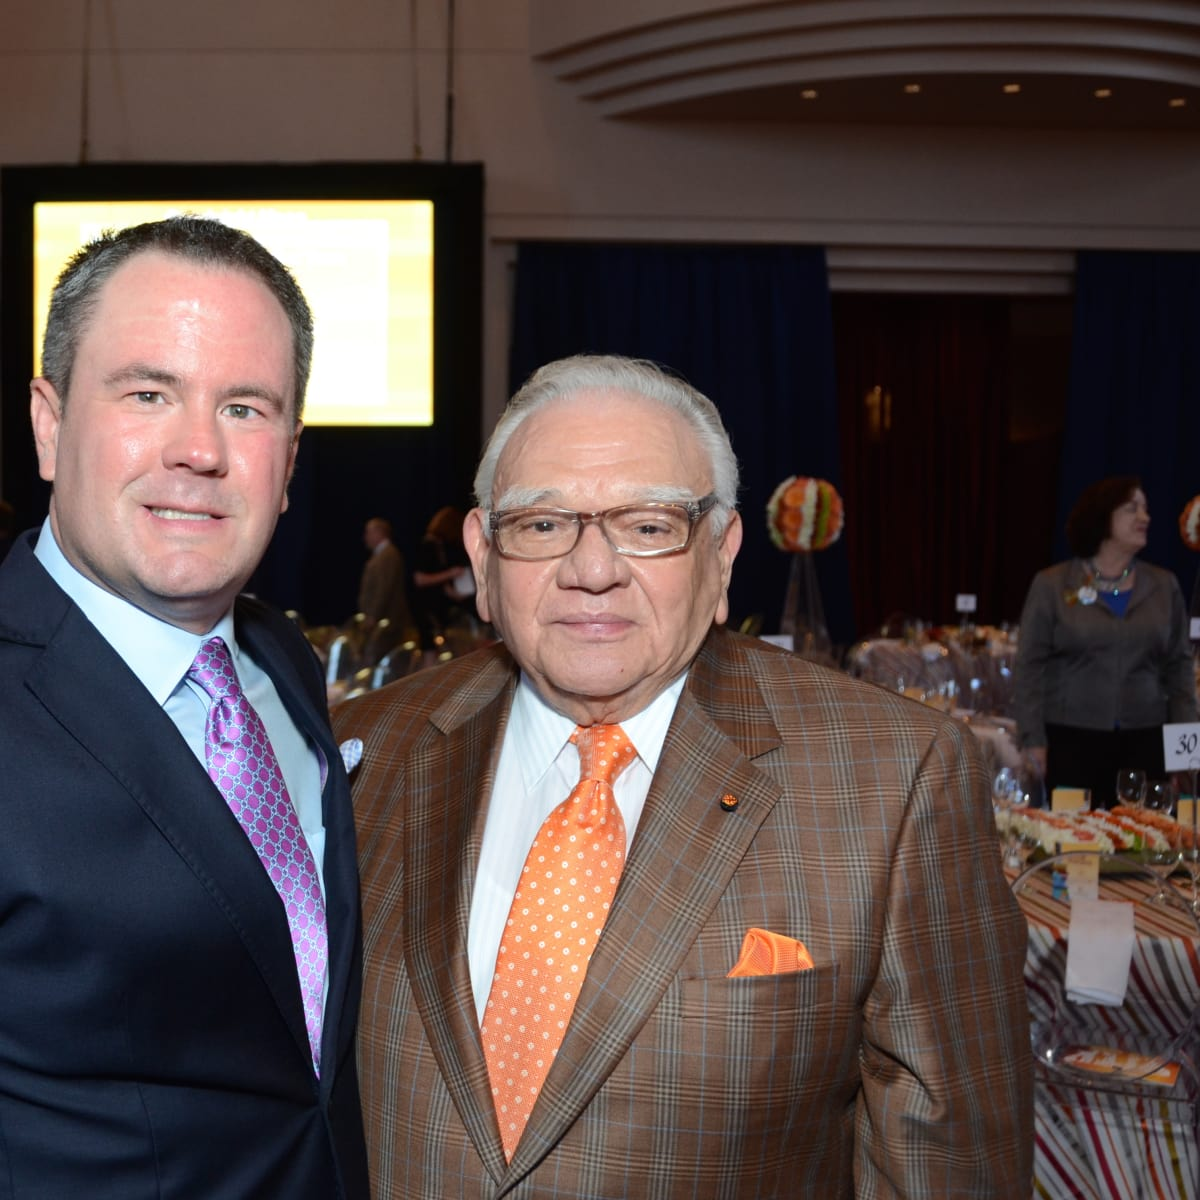 News, shelby, Legacy luncheon, Sept. 2015, Bryan Hlavinka, Frank Campisi